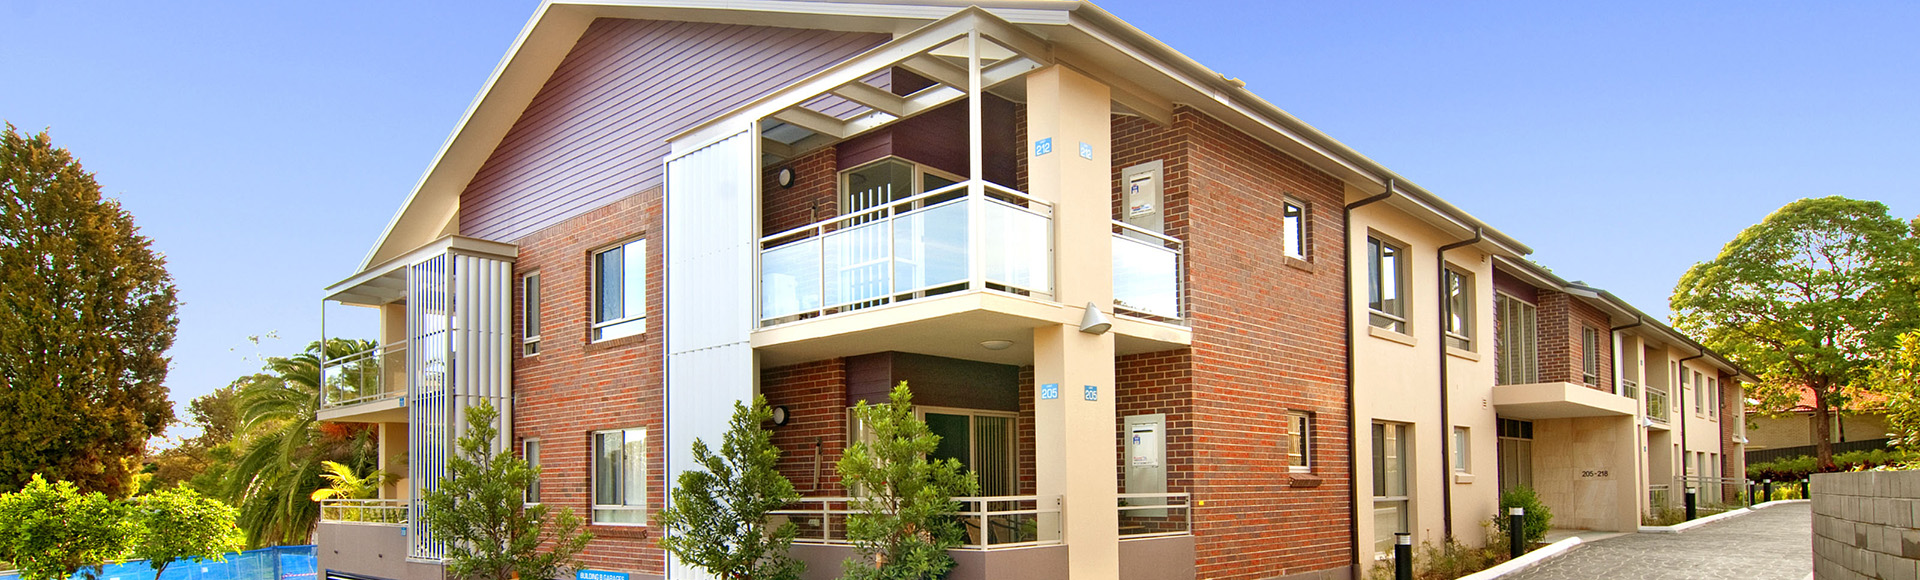 The Willows Retirement Village External Units 1920x580